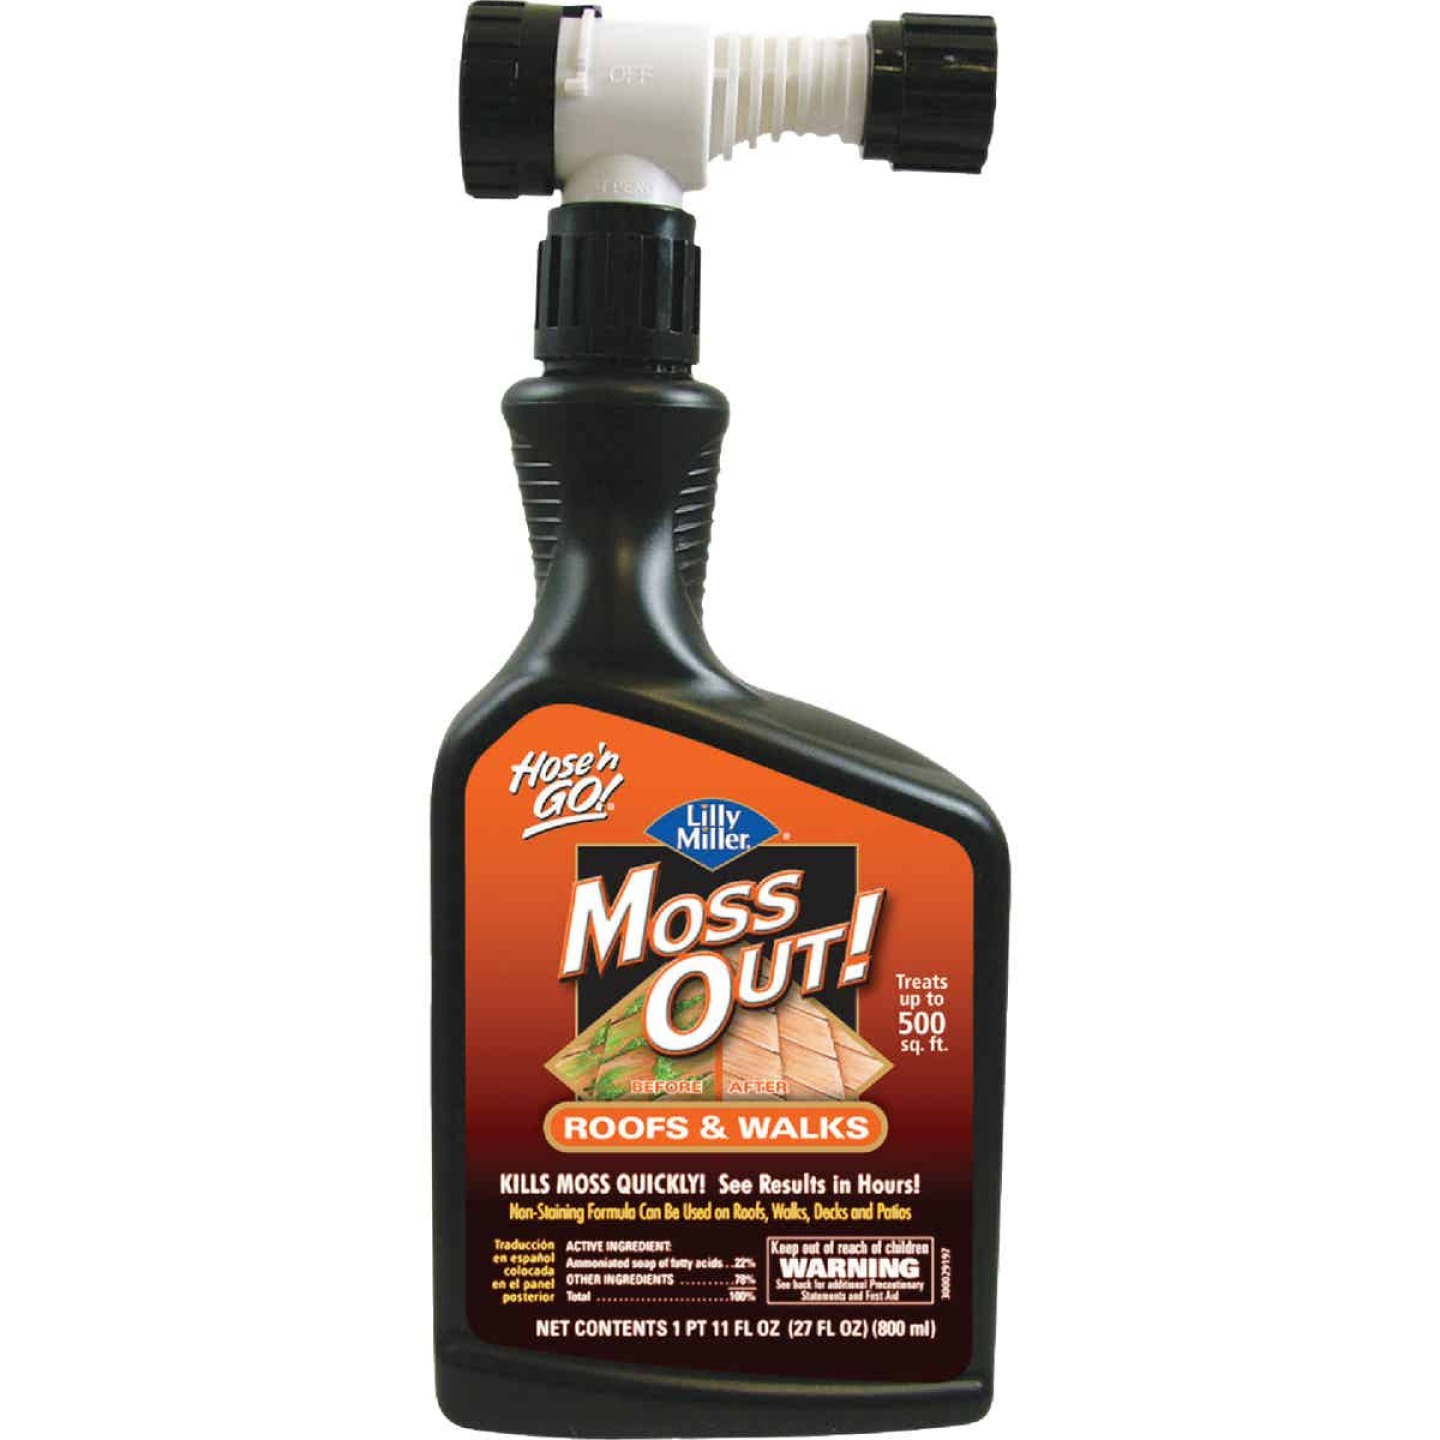 Lilly Miller MOSS OUT! 27 Oz. Ready To Spray Moss & Algae Killer Image 1